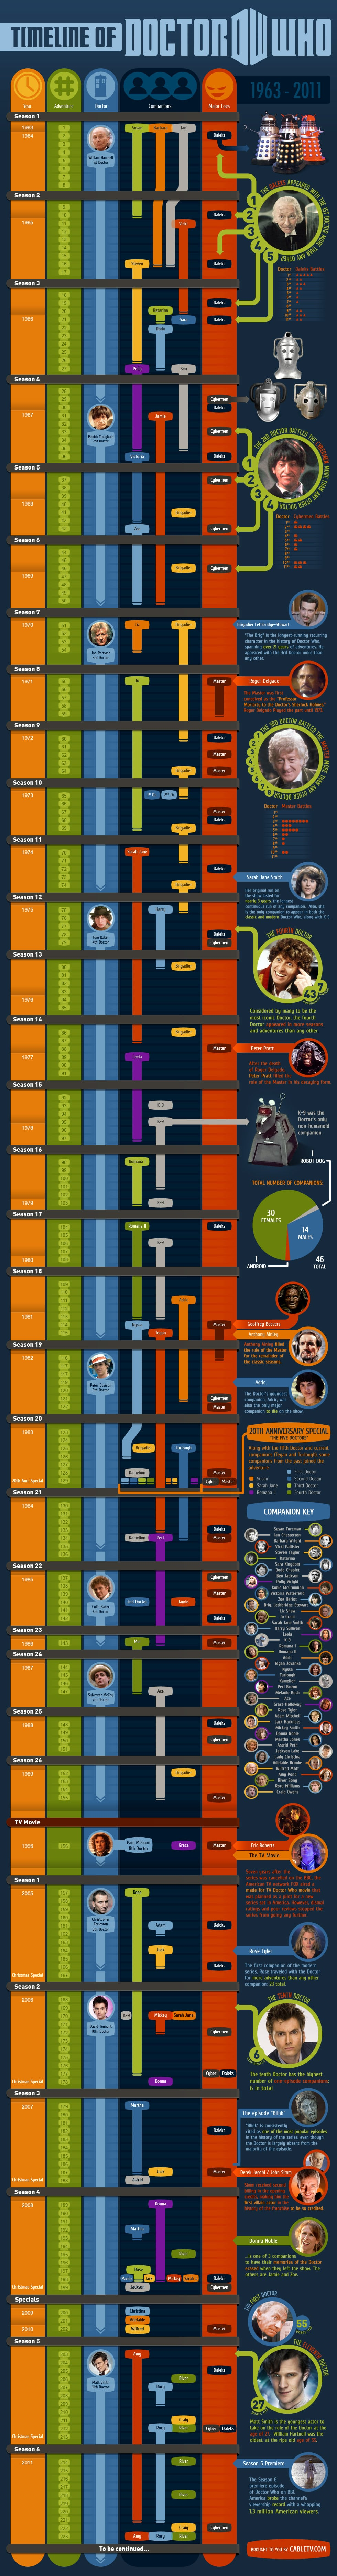 The Complete Timeline Of Doctor Who [Infographic]